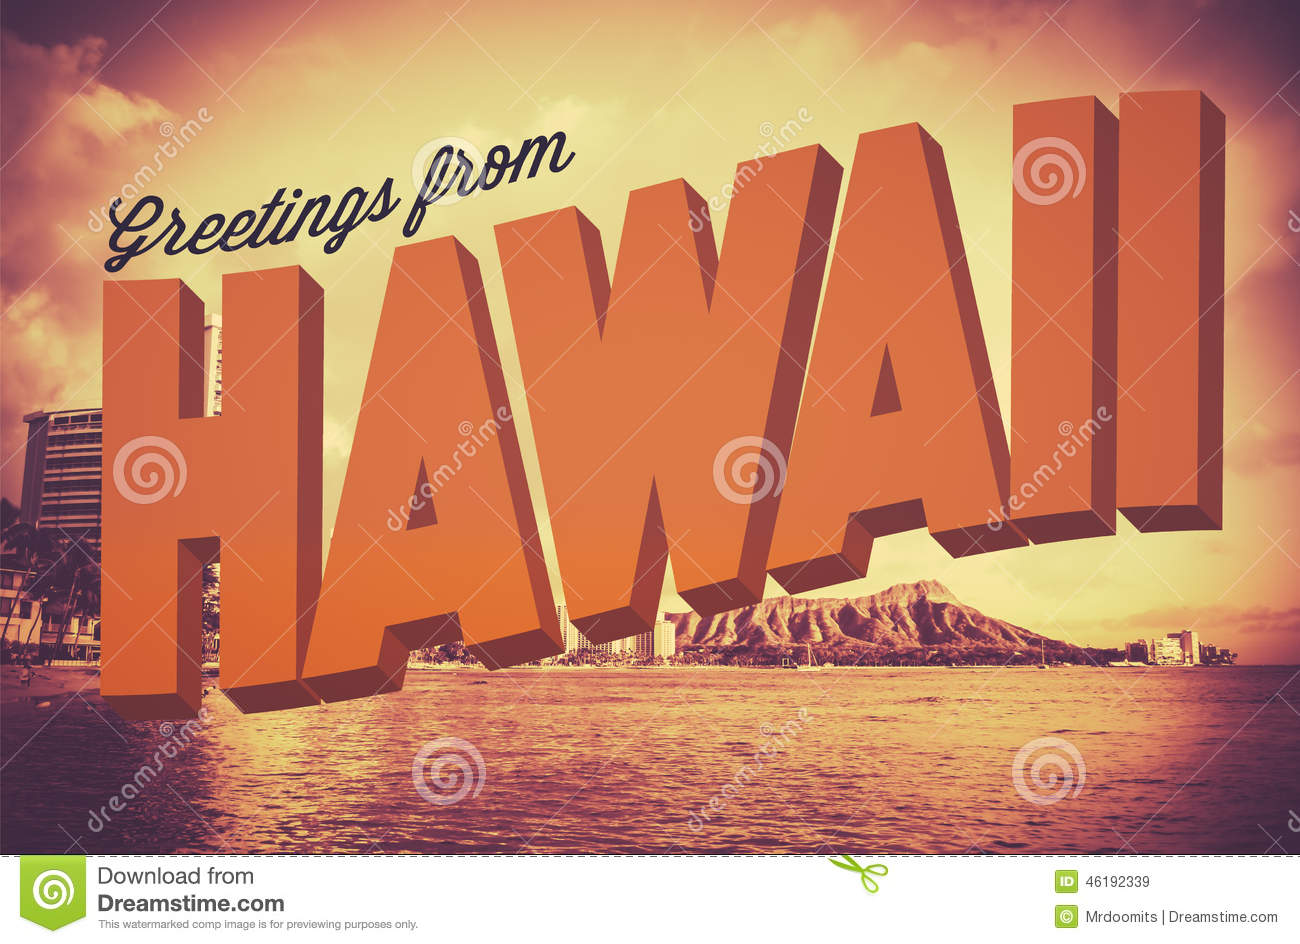 Retro Greetings From Hawaii Postcard Stock Illustration - Image ...